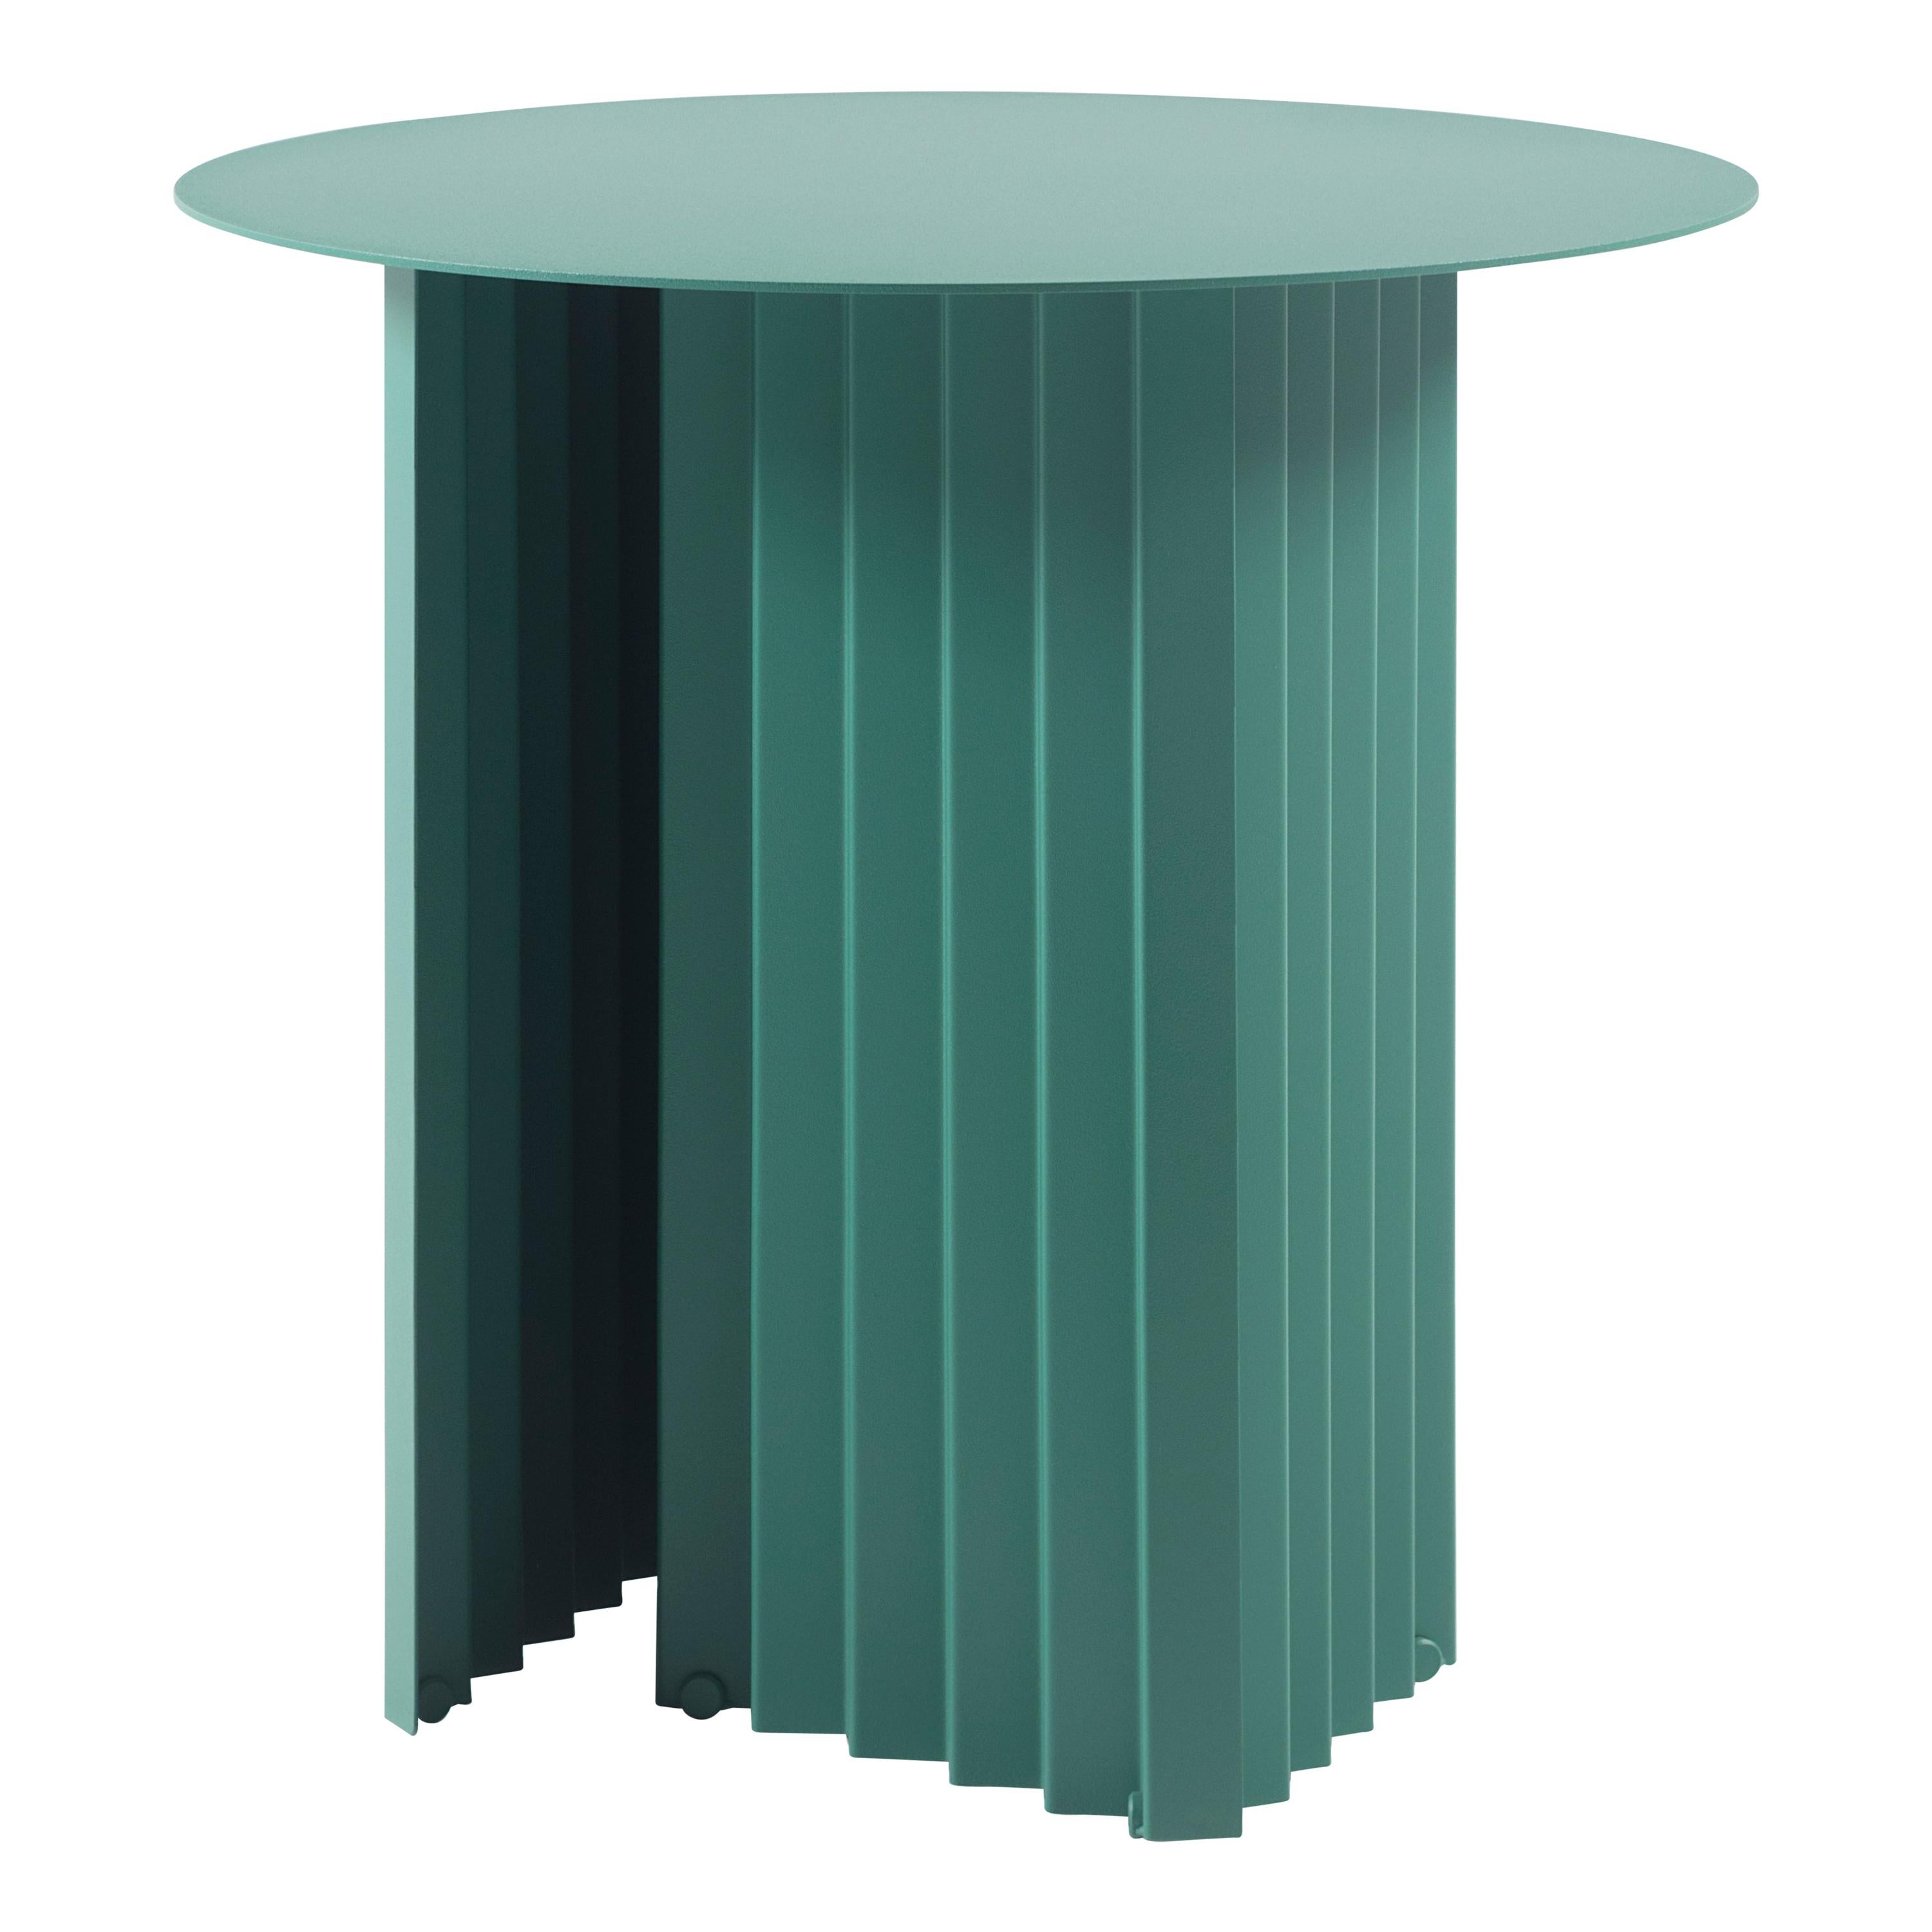 RS Barcelona Plec Round Small Table in Green Metal by A.P.O.